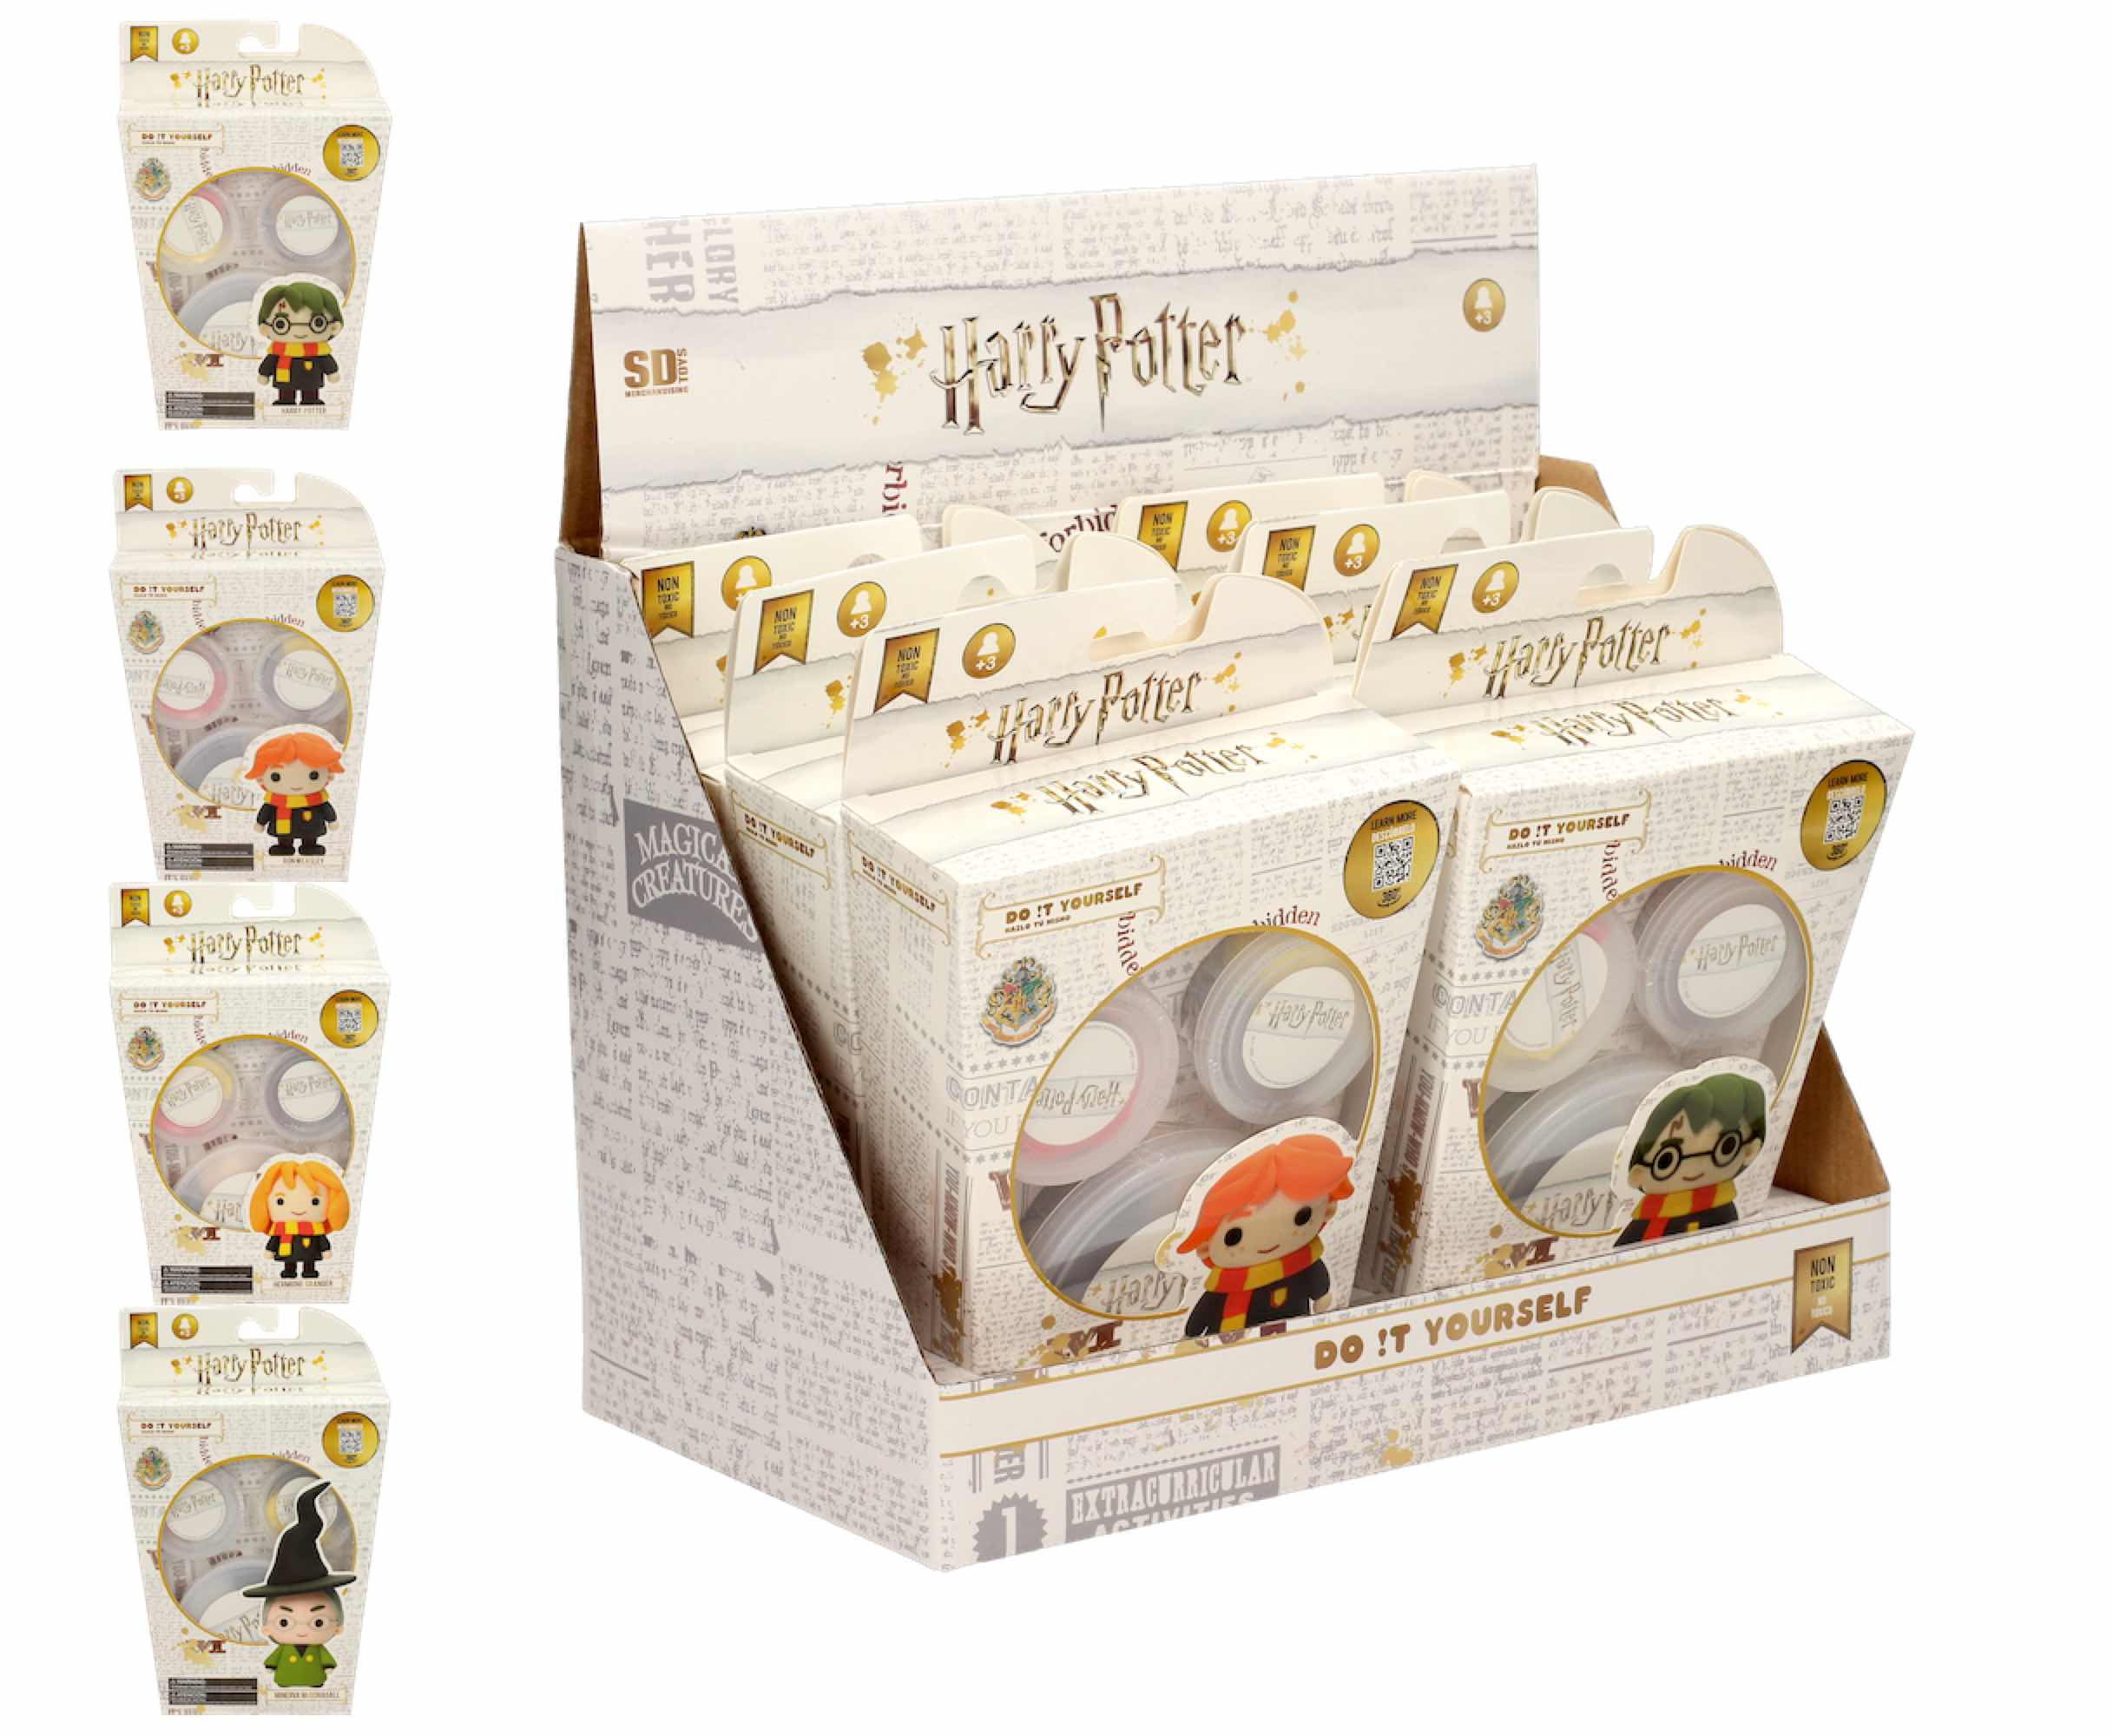 EXPOSITOR 6 UNIDADES SUPER DOUGH S1 HARRY POTTER- DO IT YOURSELF